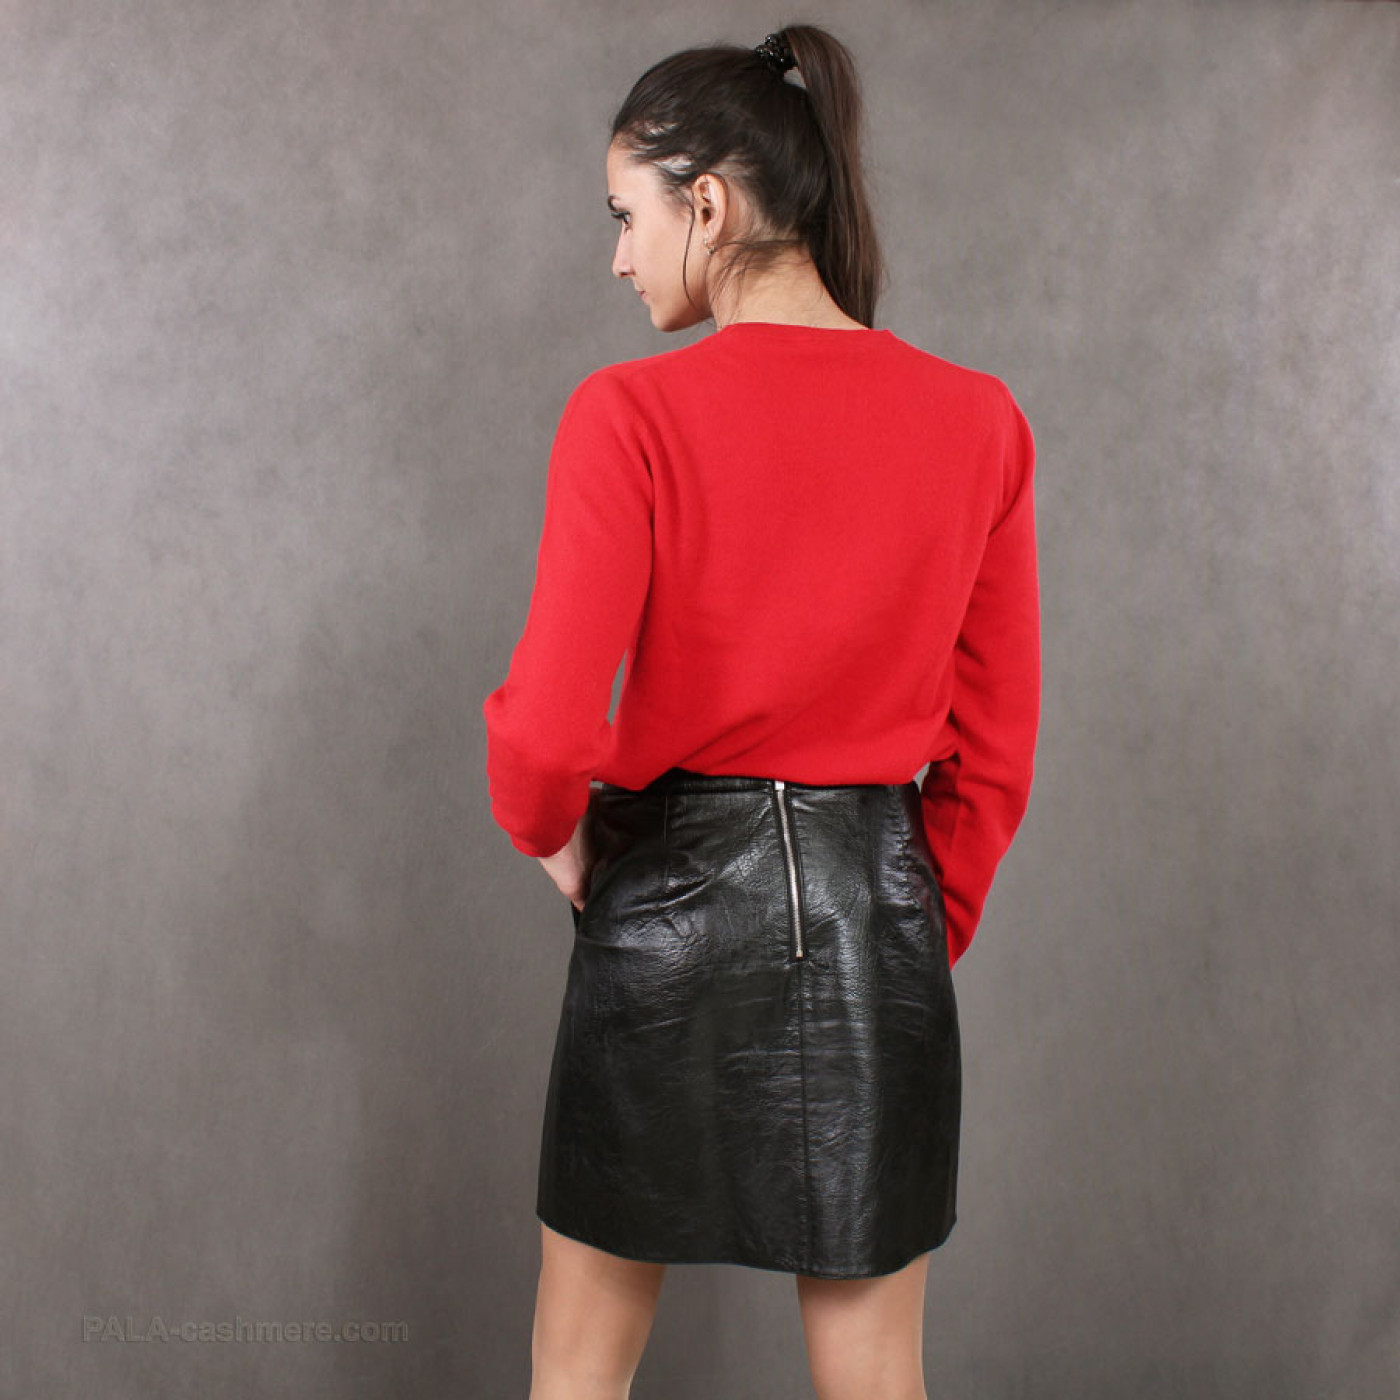 Red cashmere sweater for women